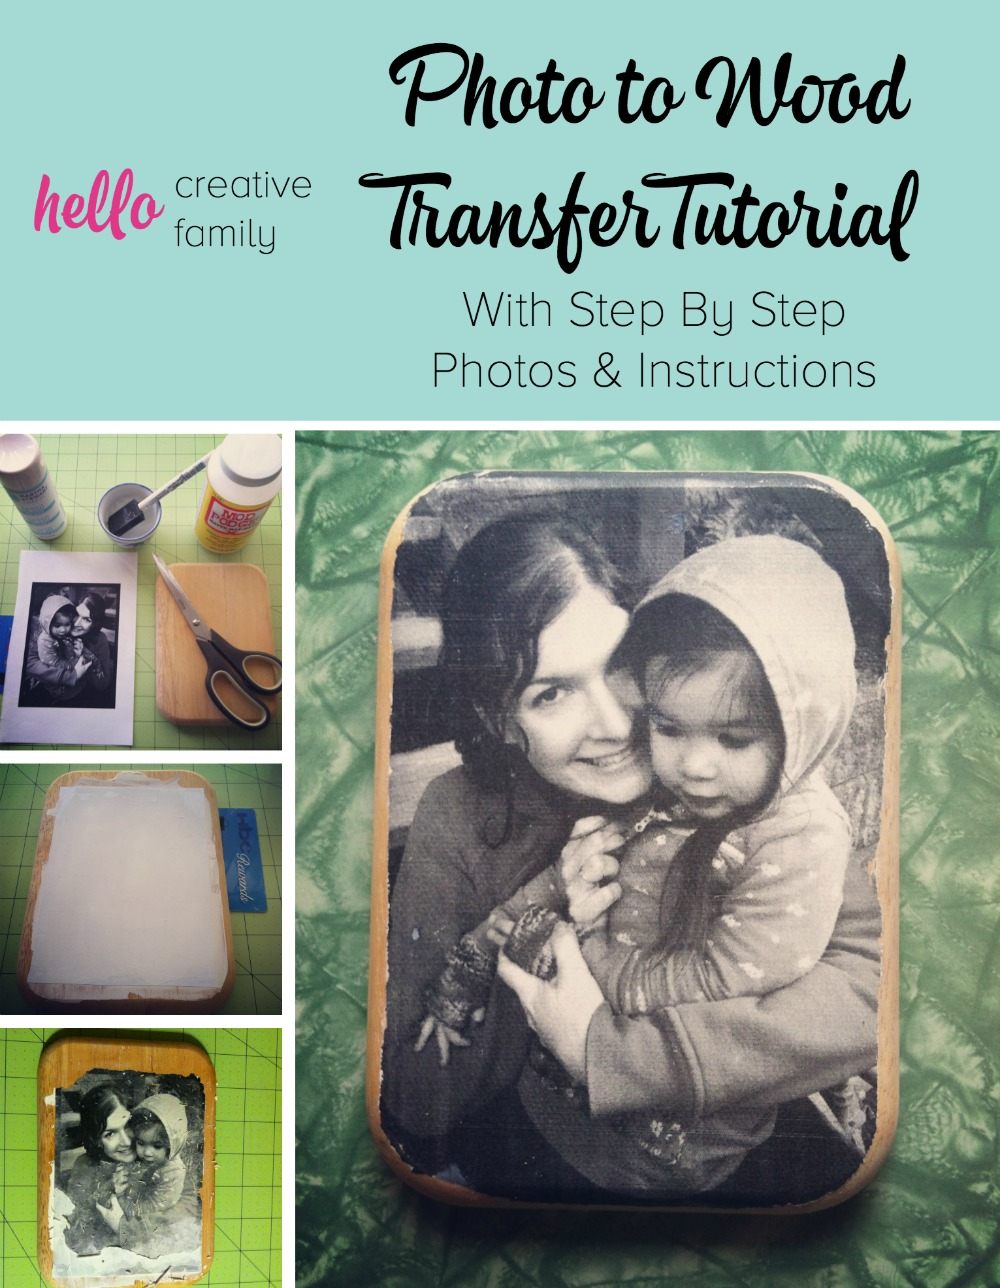 Create a one of a kind gift with this Photo to Wood Transfer Tutorial. With Step By Step Photos and Instructions this tutorial will give you great results.